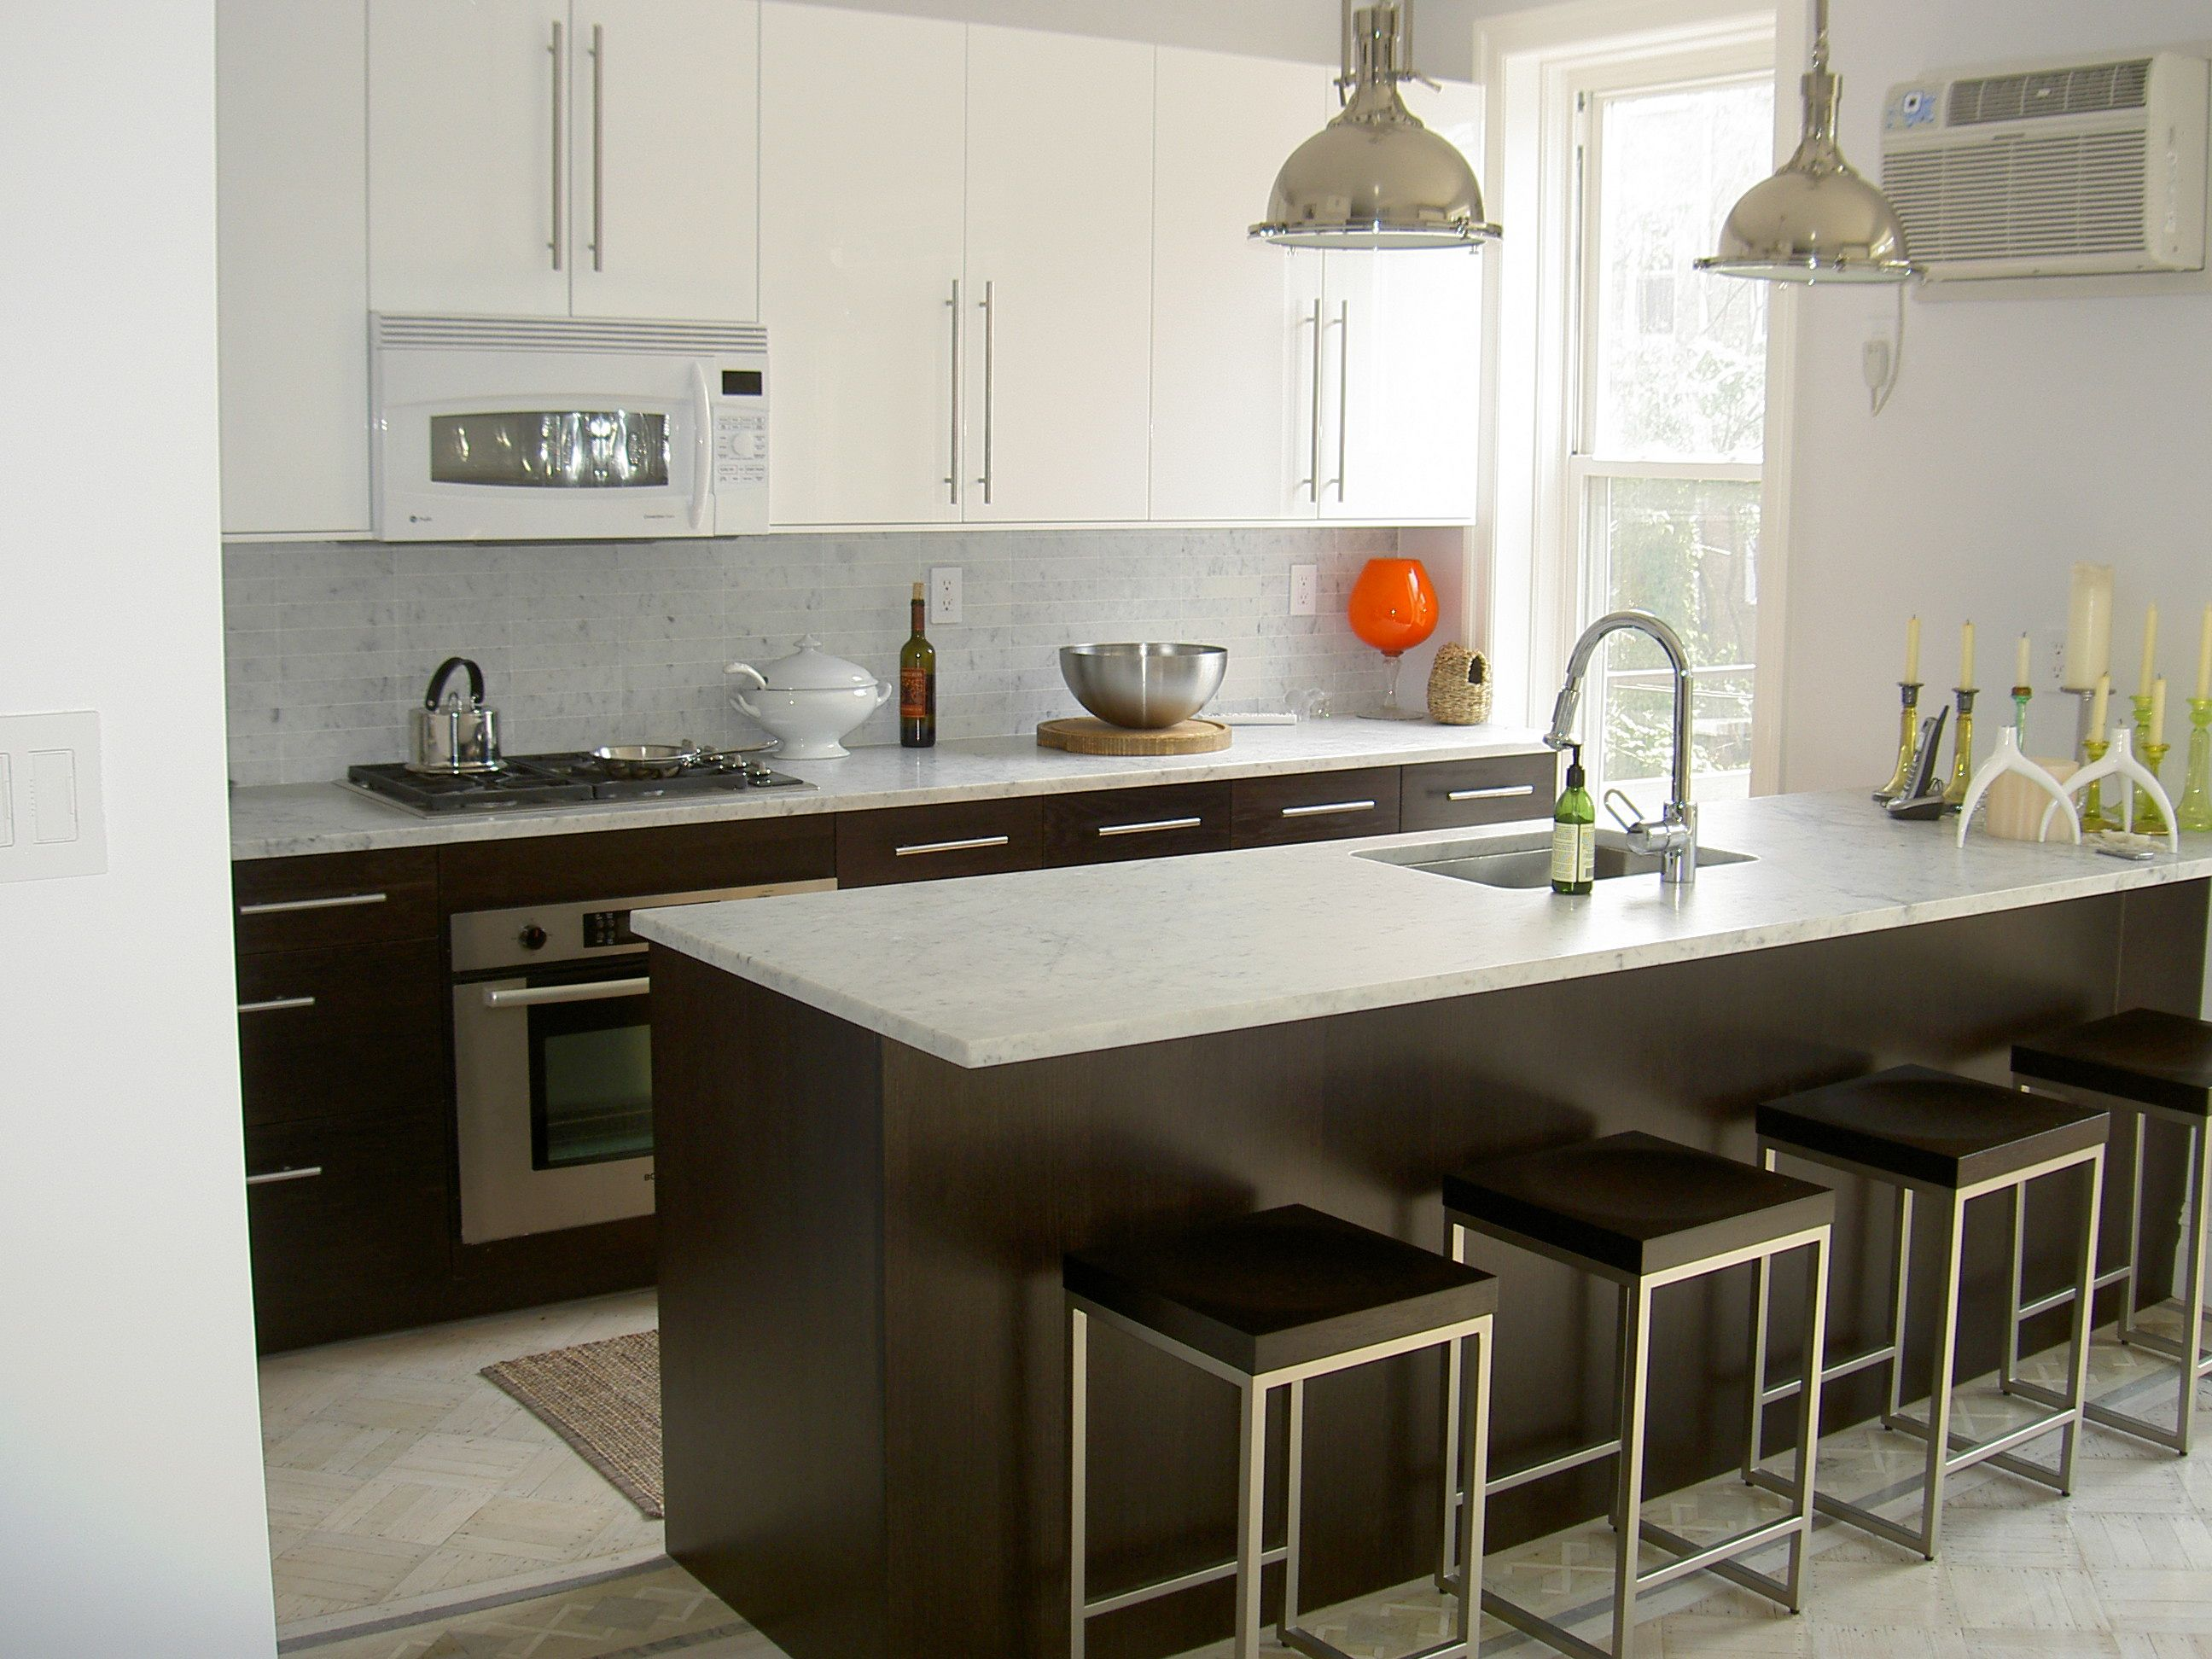 kitchens - Bing Images   Kitchen remodel small, Cheap ...